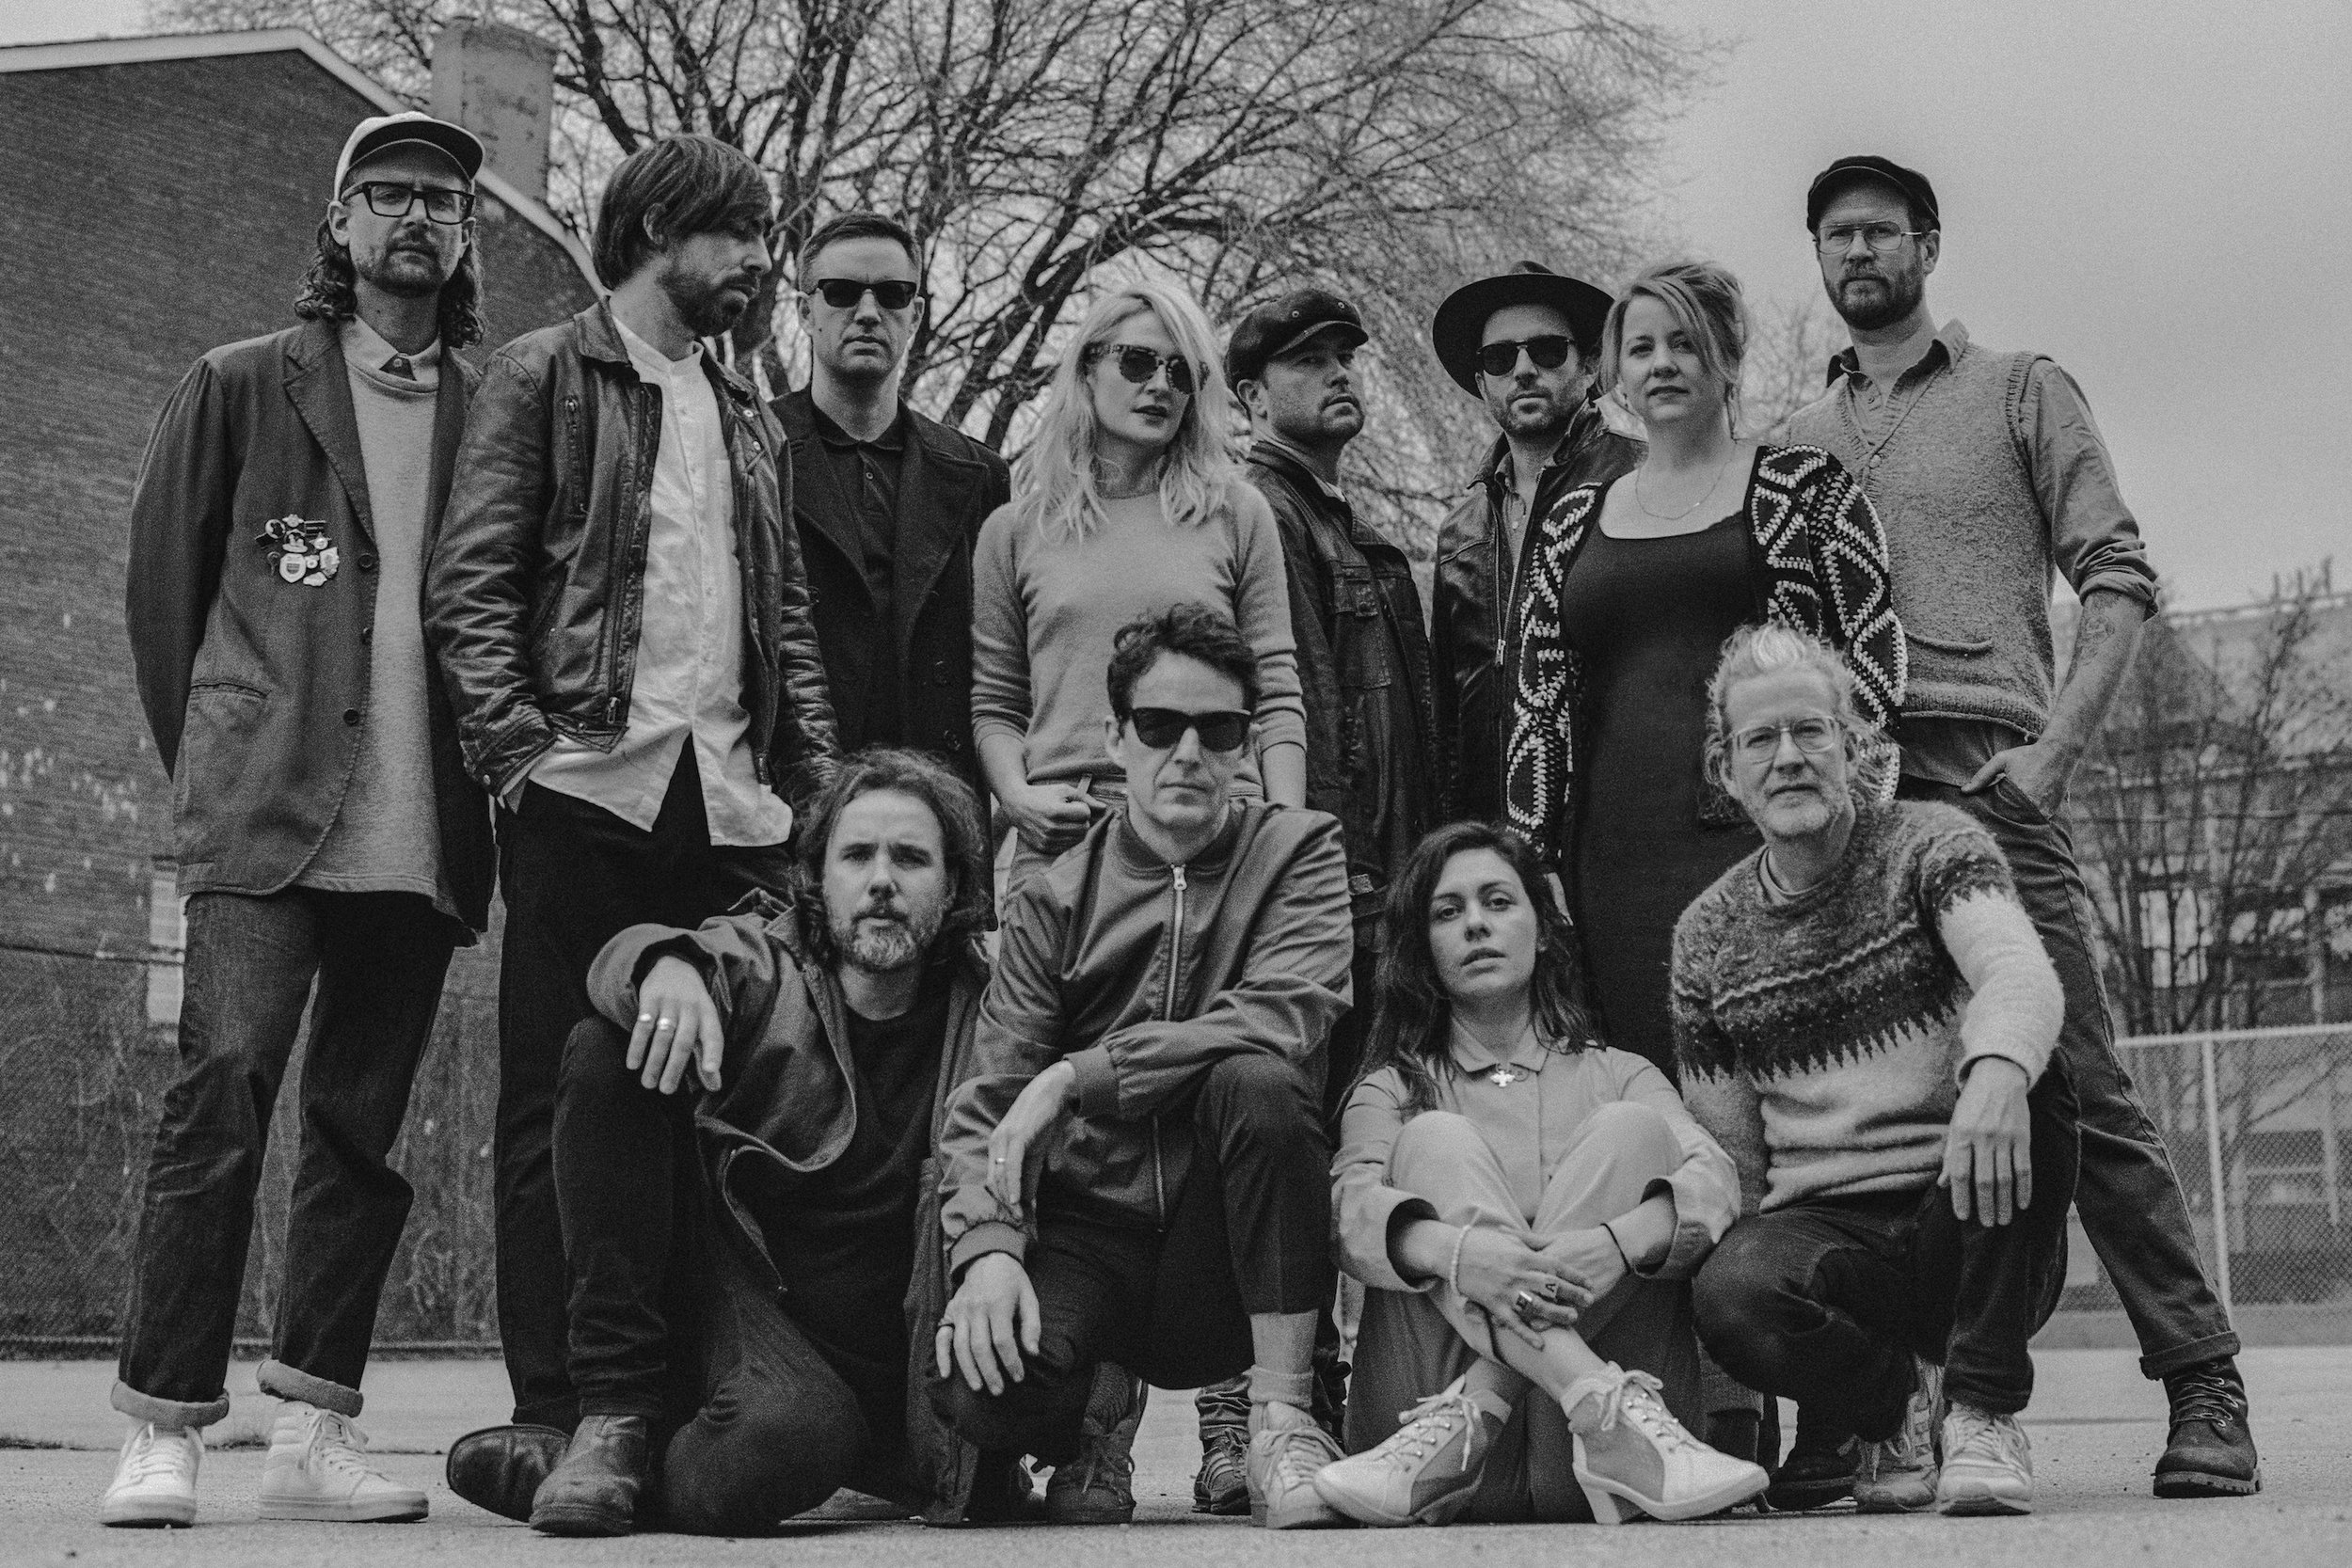 Broken Social Scene, with Canning on bottom right. photo by Norman Wong.